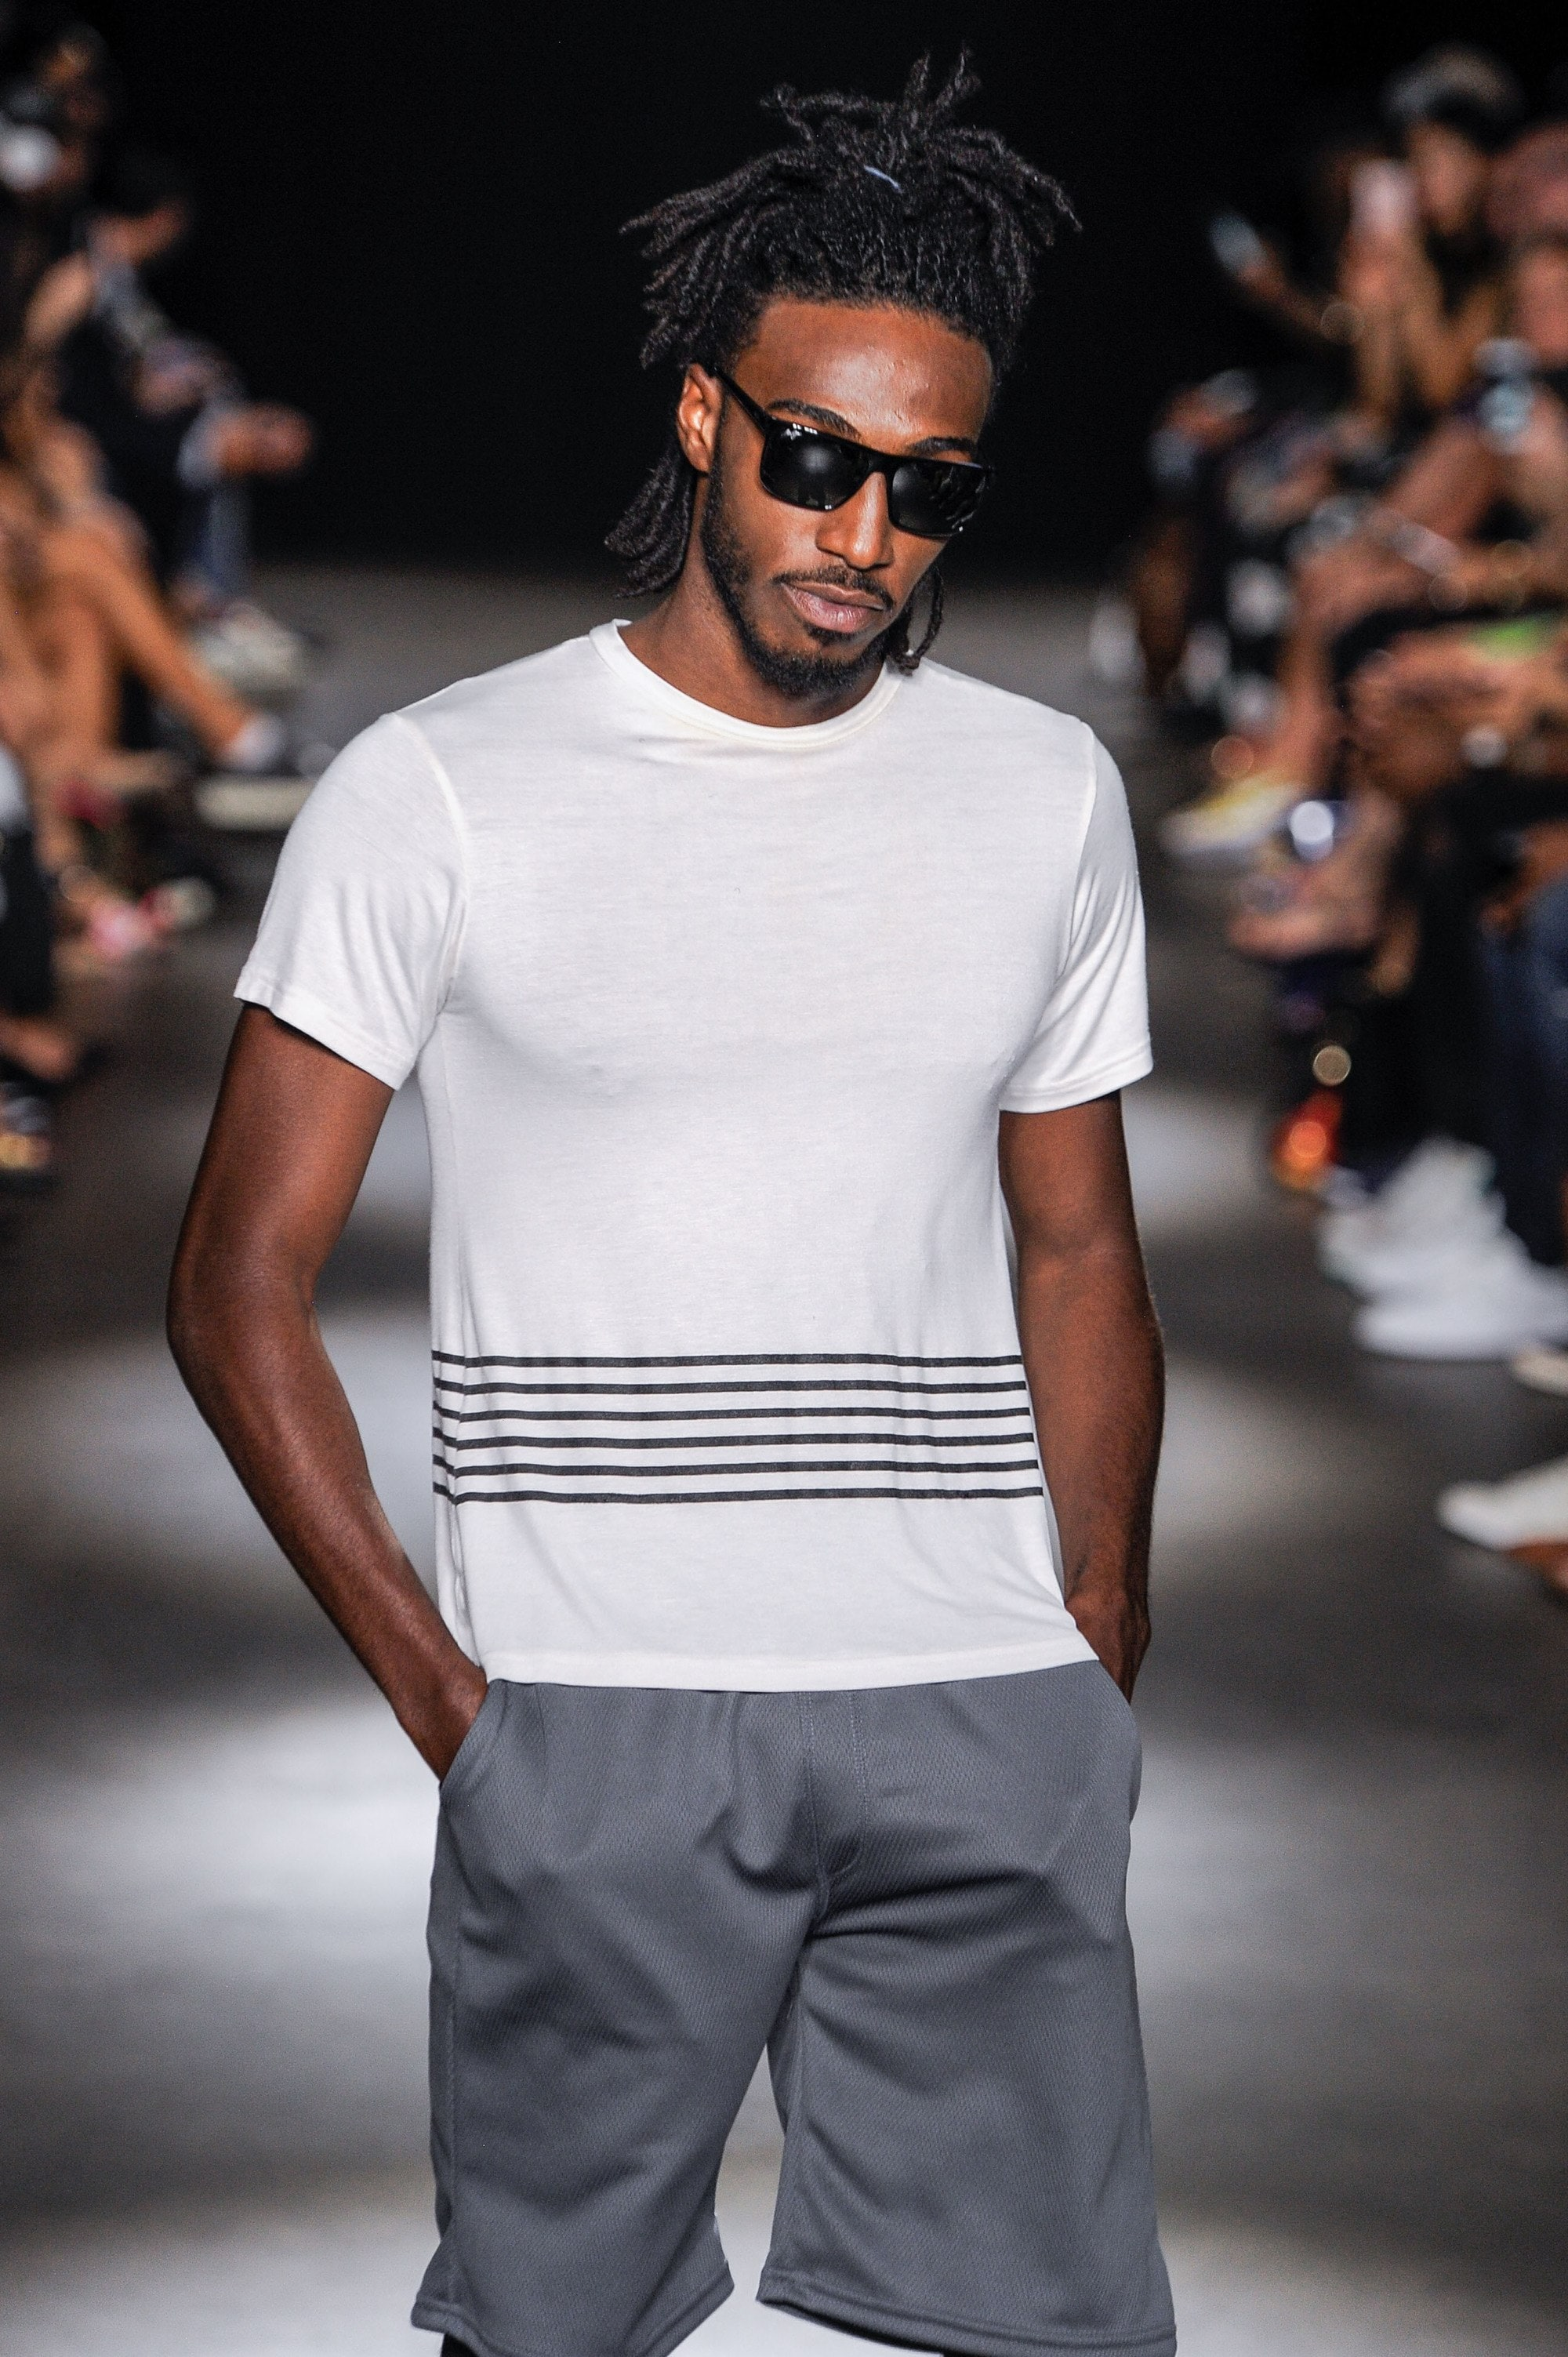 close up shot of black man with half up dreadlocks hairstyle, wearing white shirt and grey shirts on the grungy gentleman runway